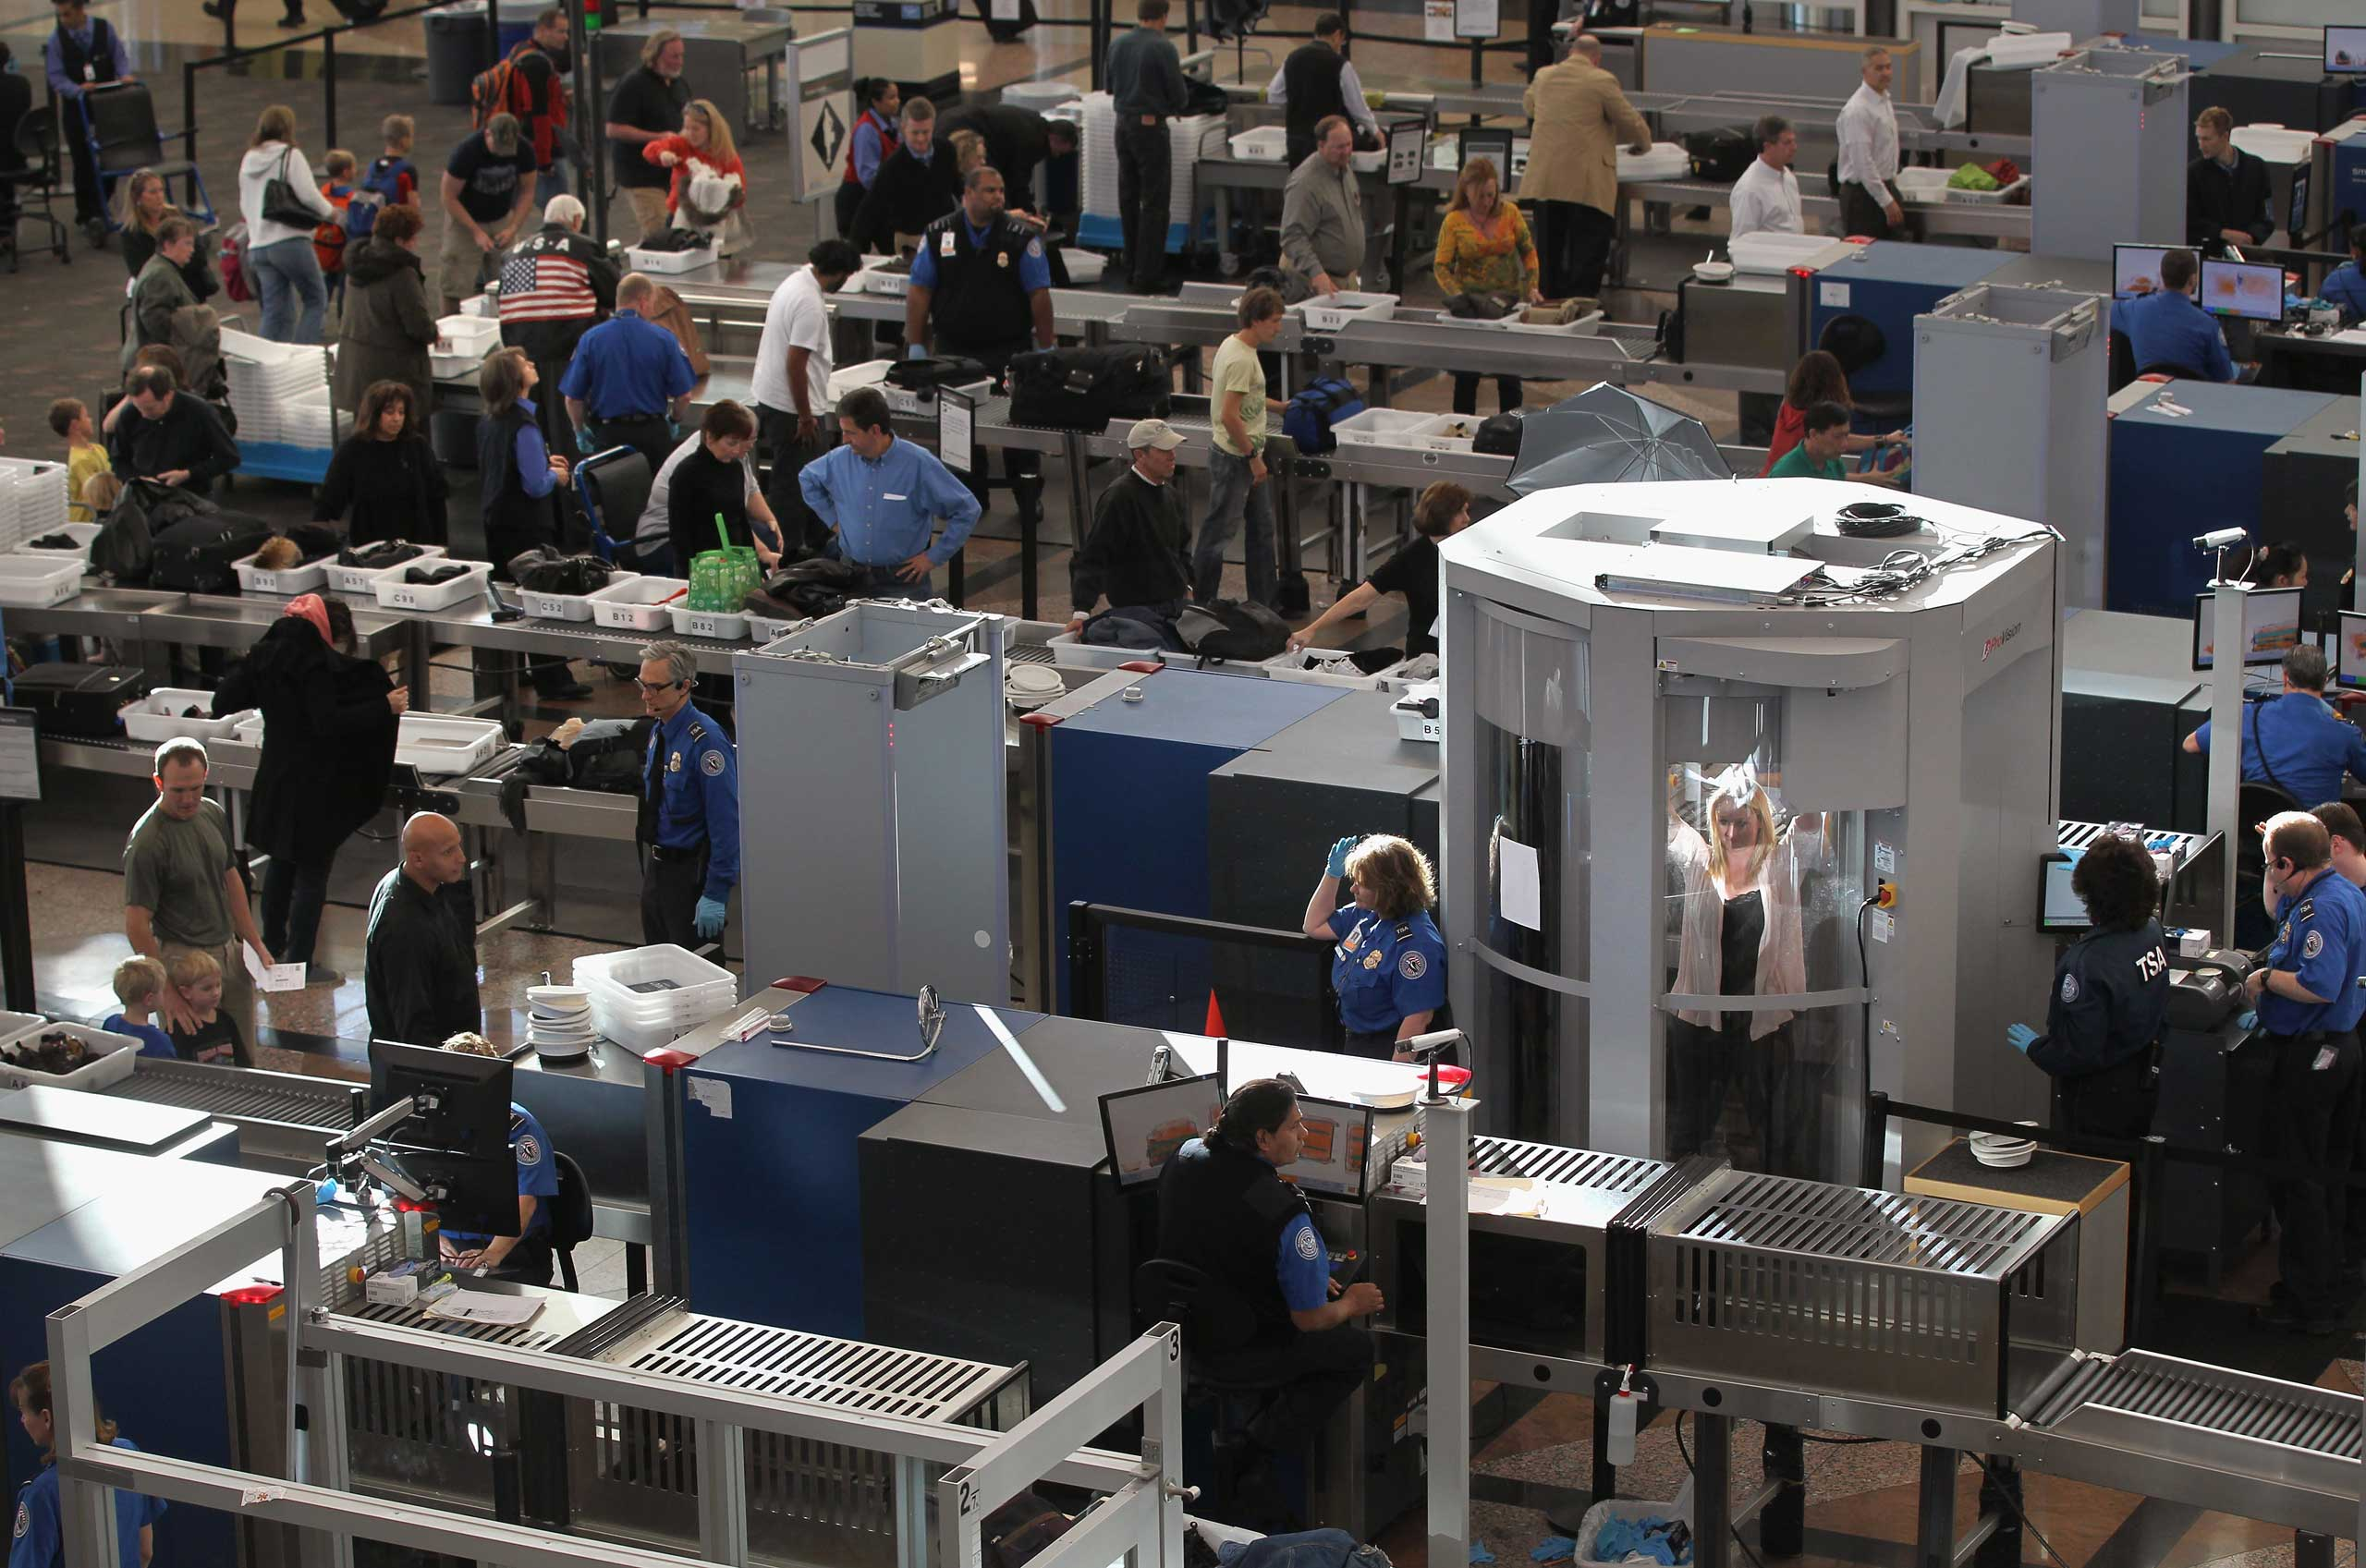 Transportation Security Administration agents screen passengers at Denver International Airport in 2010.